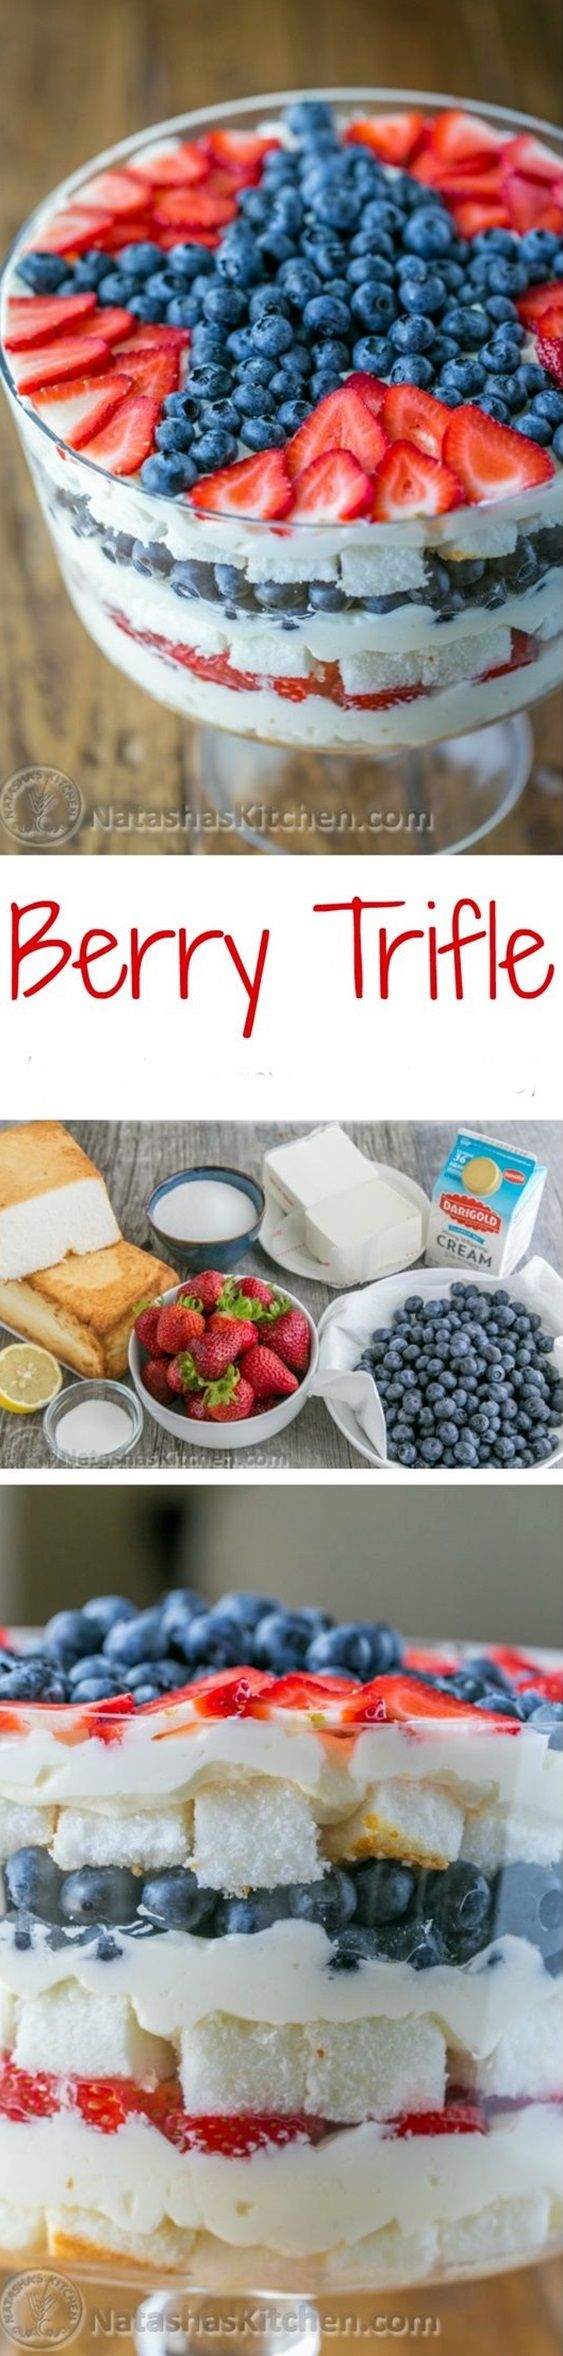 <3 YUMMY FOURTH OF JULY RECIPES <3 FOURTH OF JULY PARTY IDEAS <3 10 Enjoyable Fourth of July Party Ideas To Try In 2017